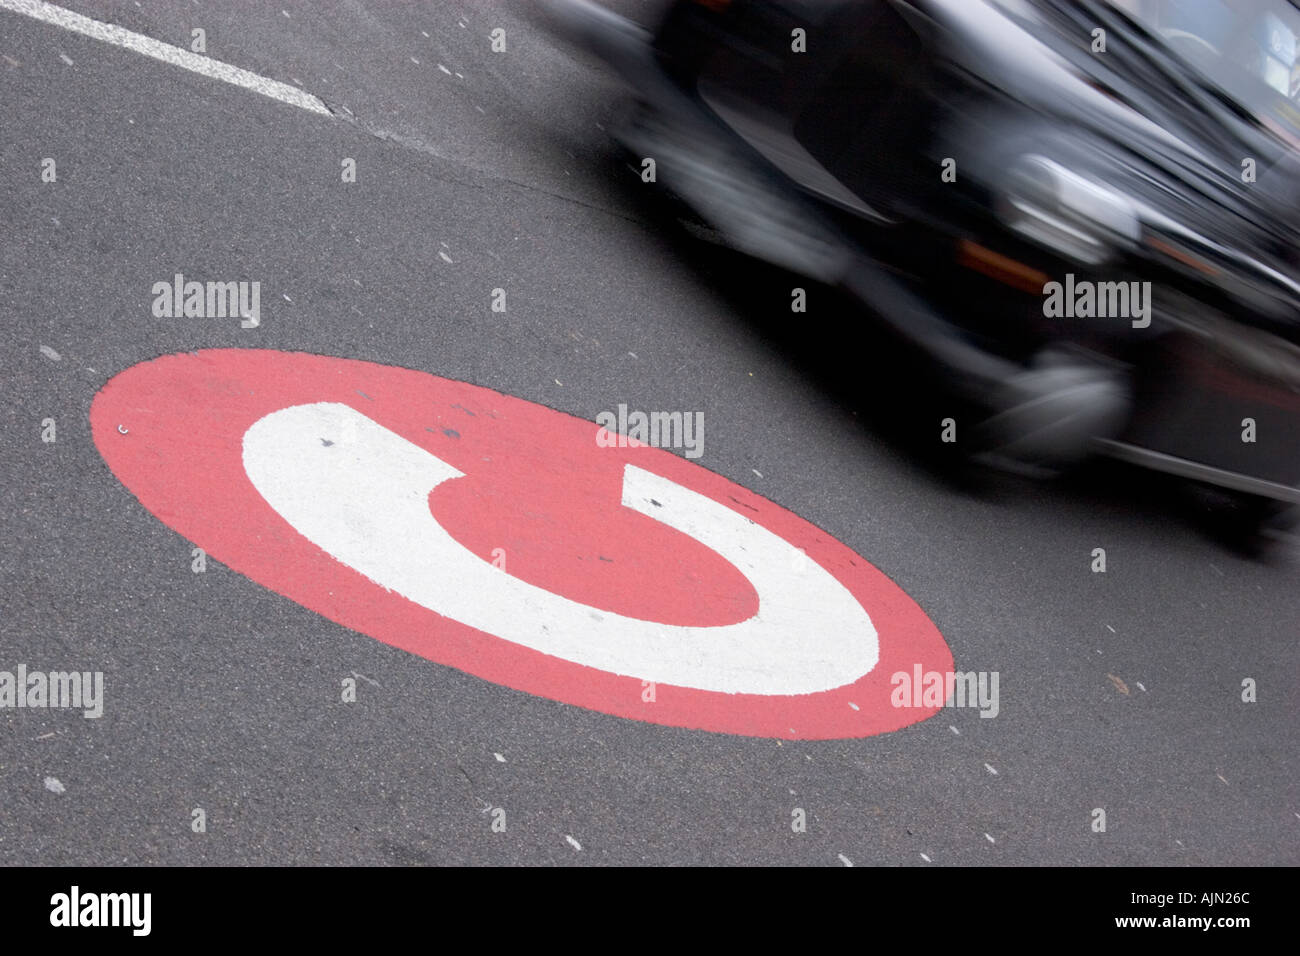 Congestion charge signer une signalisation en route avec London taxi Photo Stock